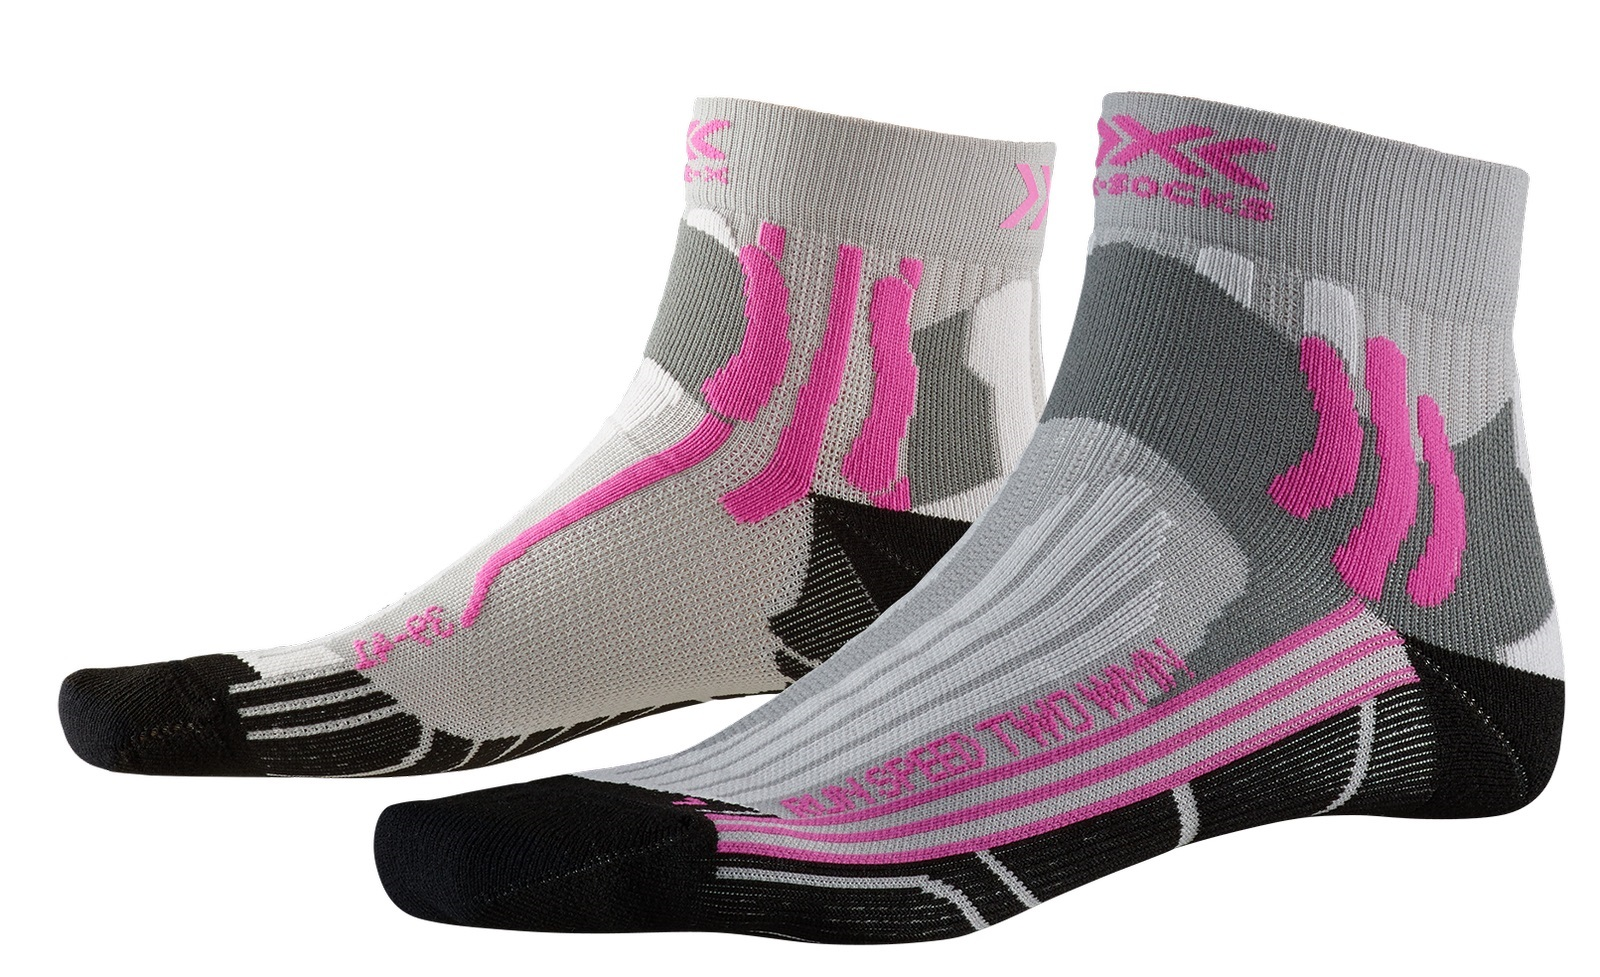 XSOCKS  SPEED TWO GRISE ET ROSE  Chaussettes running xsocks